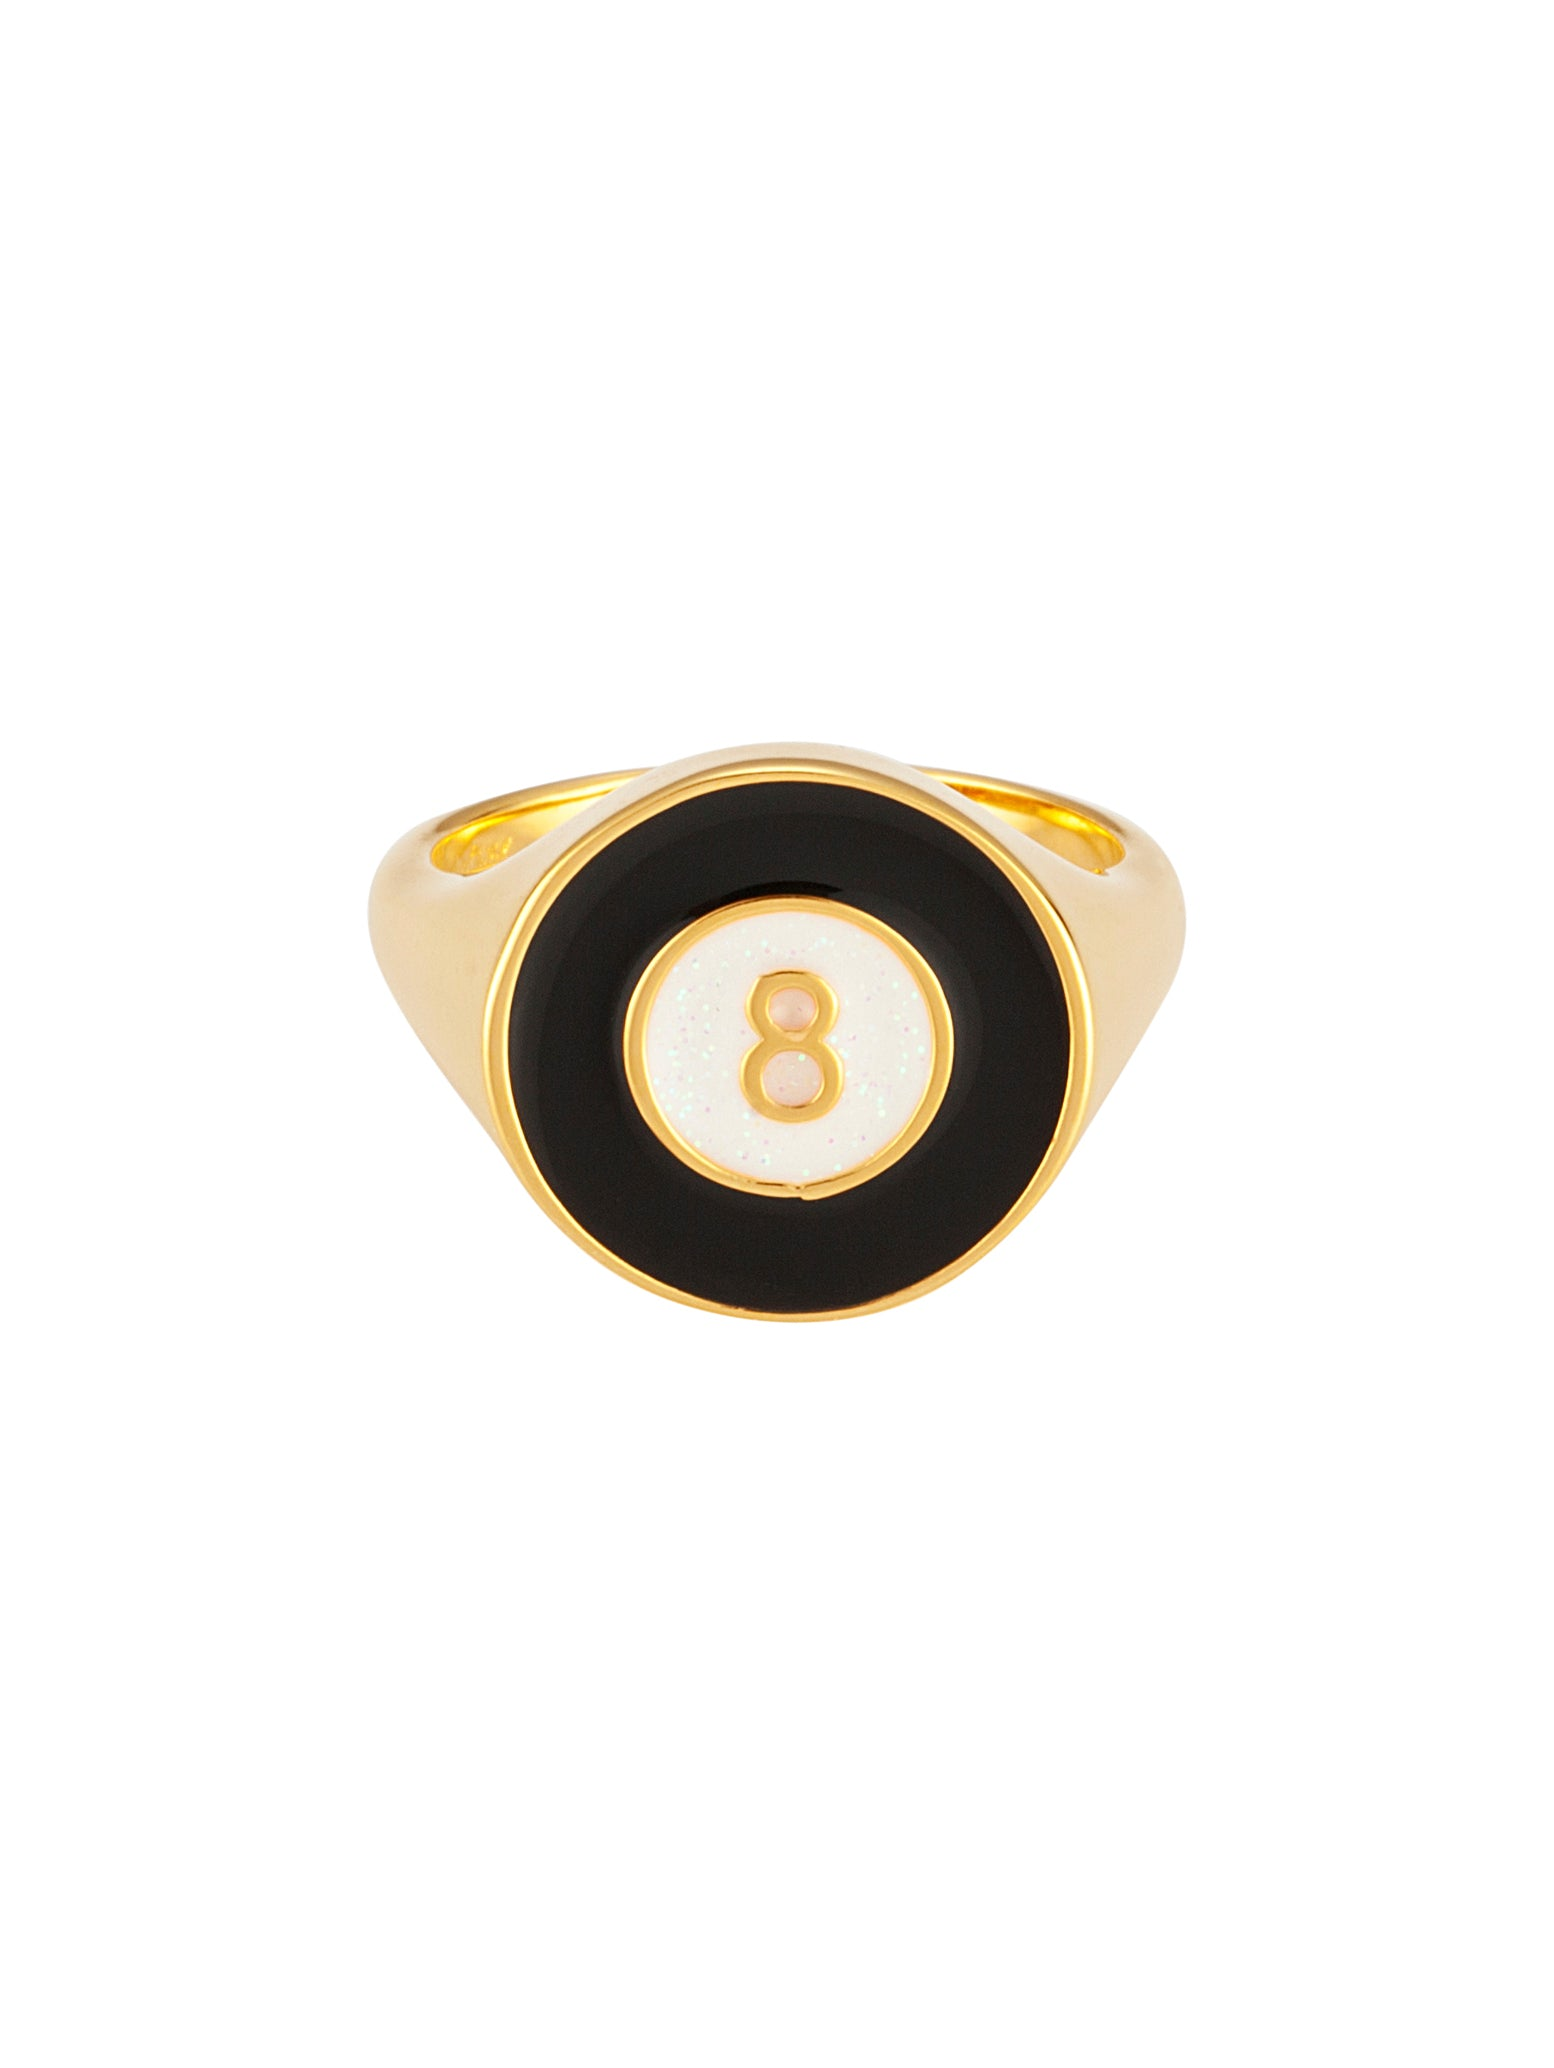 Lucky 8 Black Gold